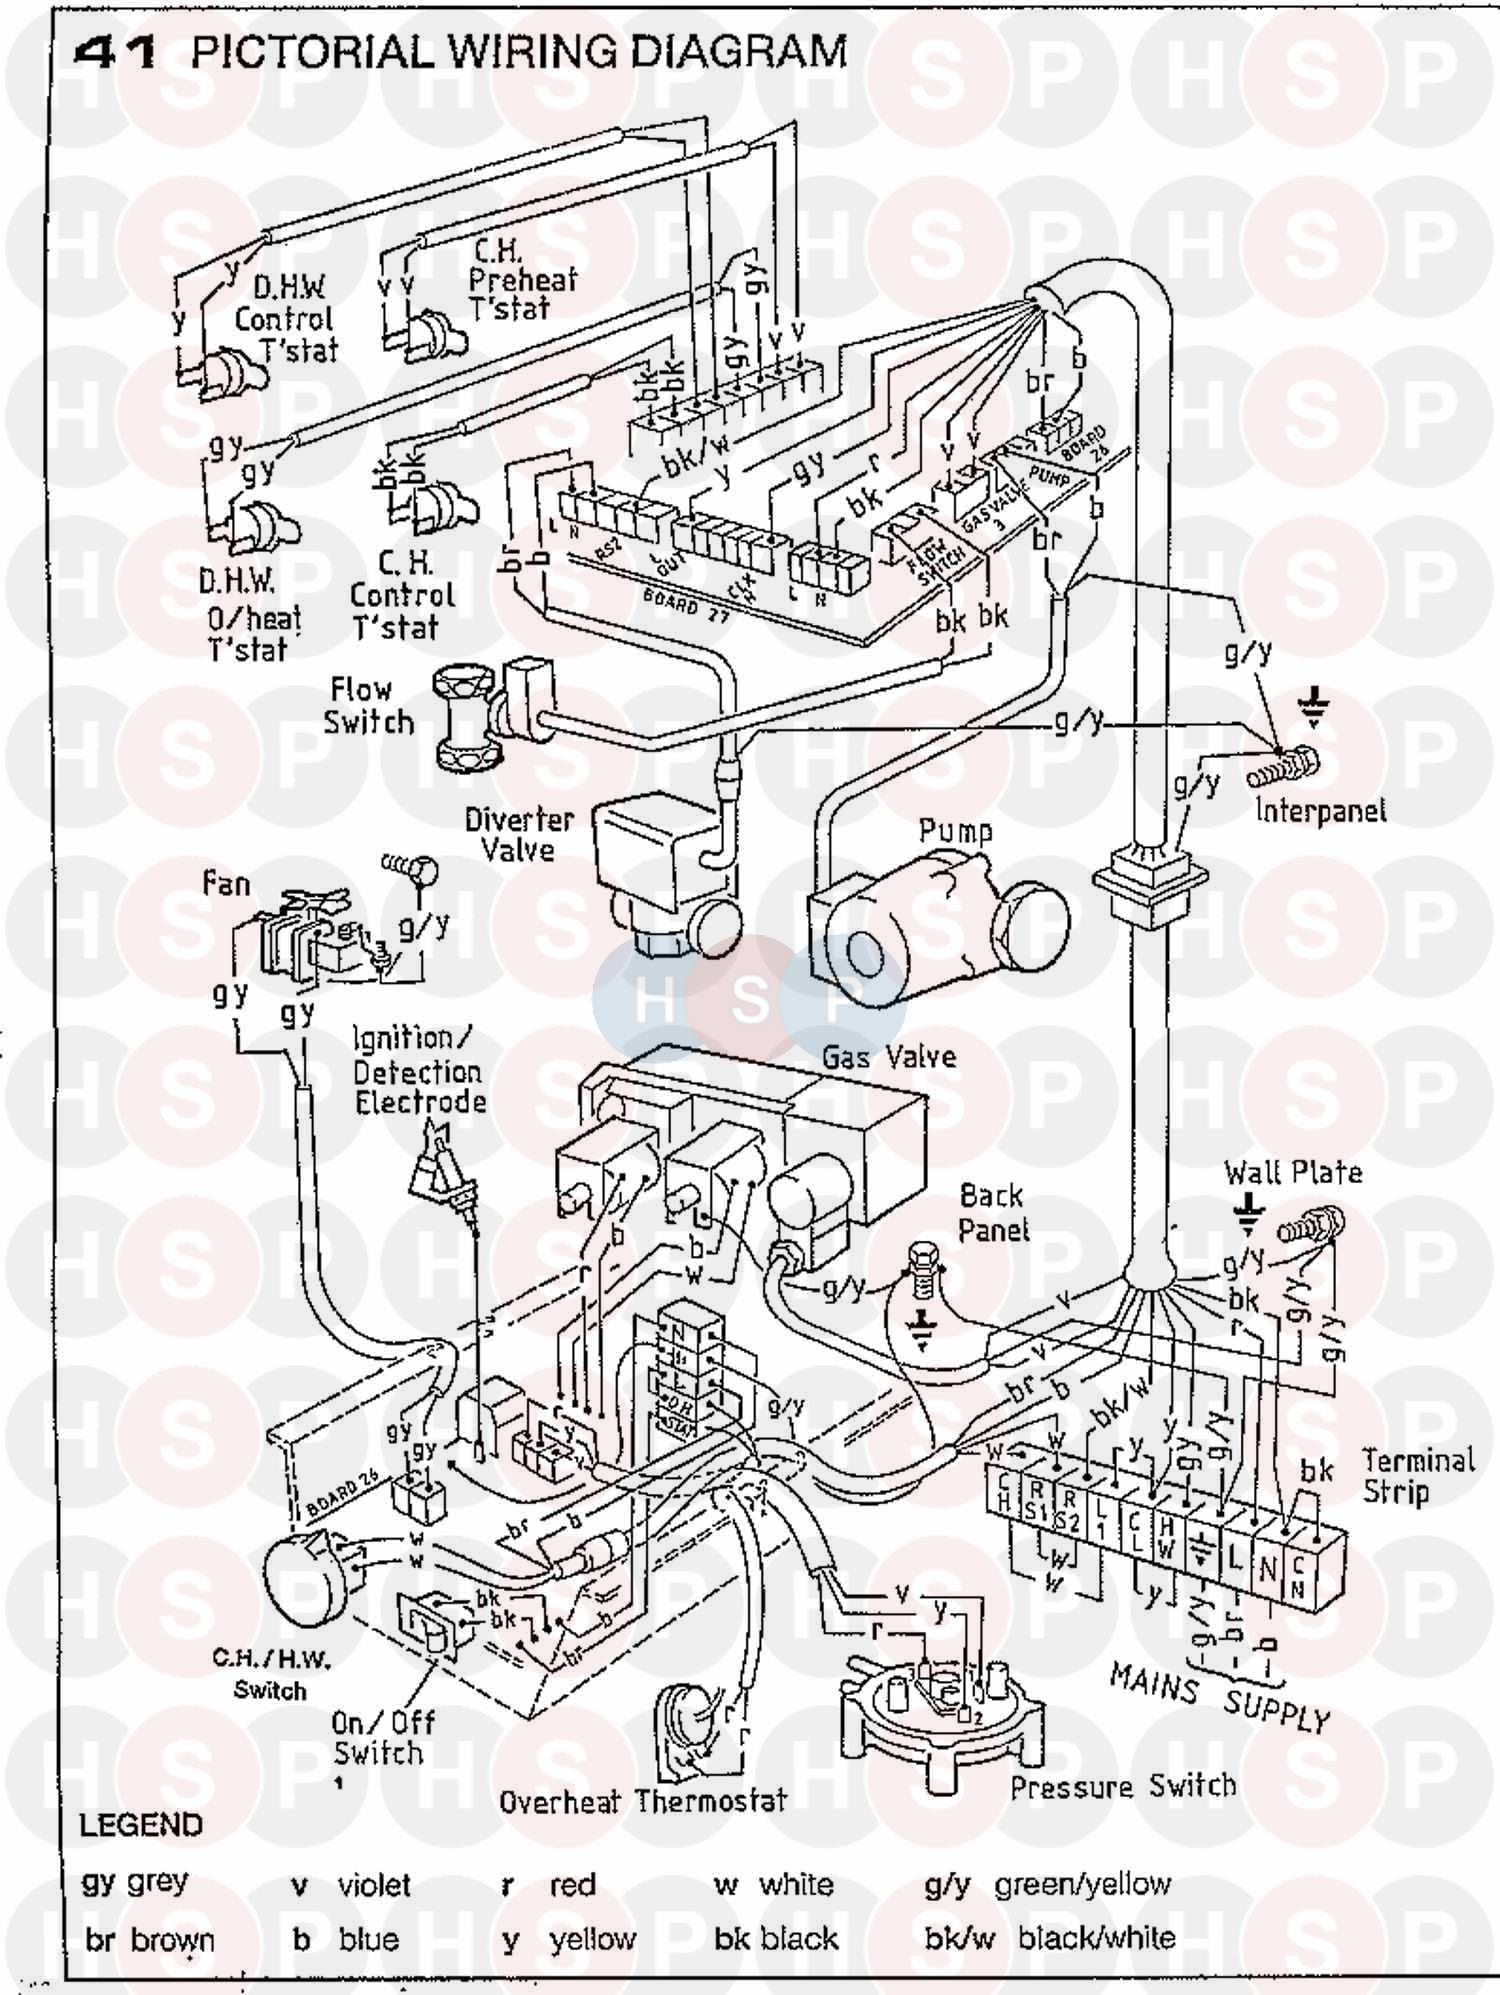 Fine Flow Switch Wiring Diagram Pictures Inspiration - Electrical ...